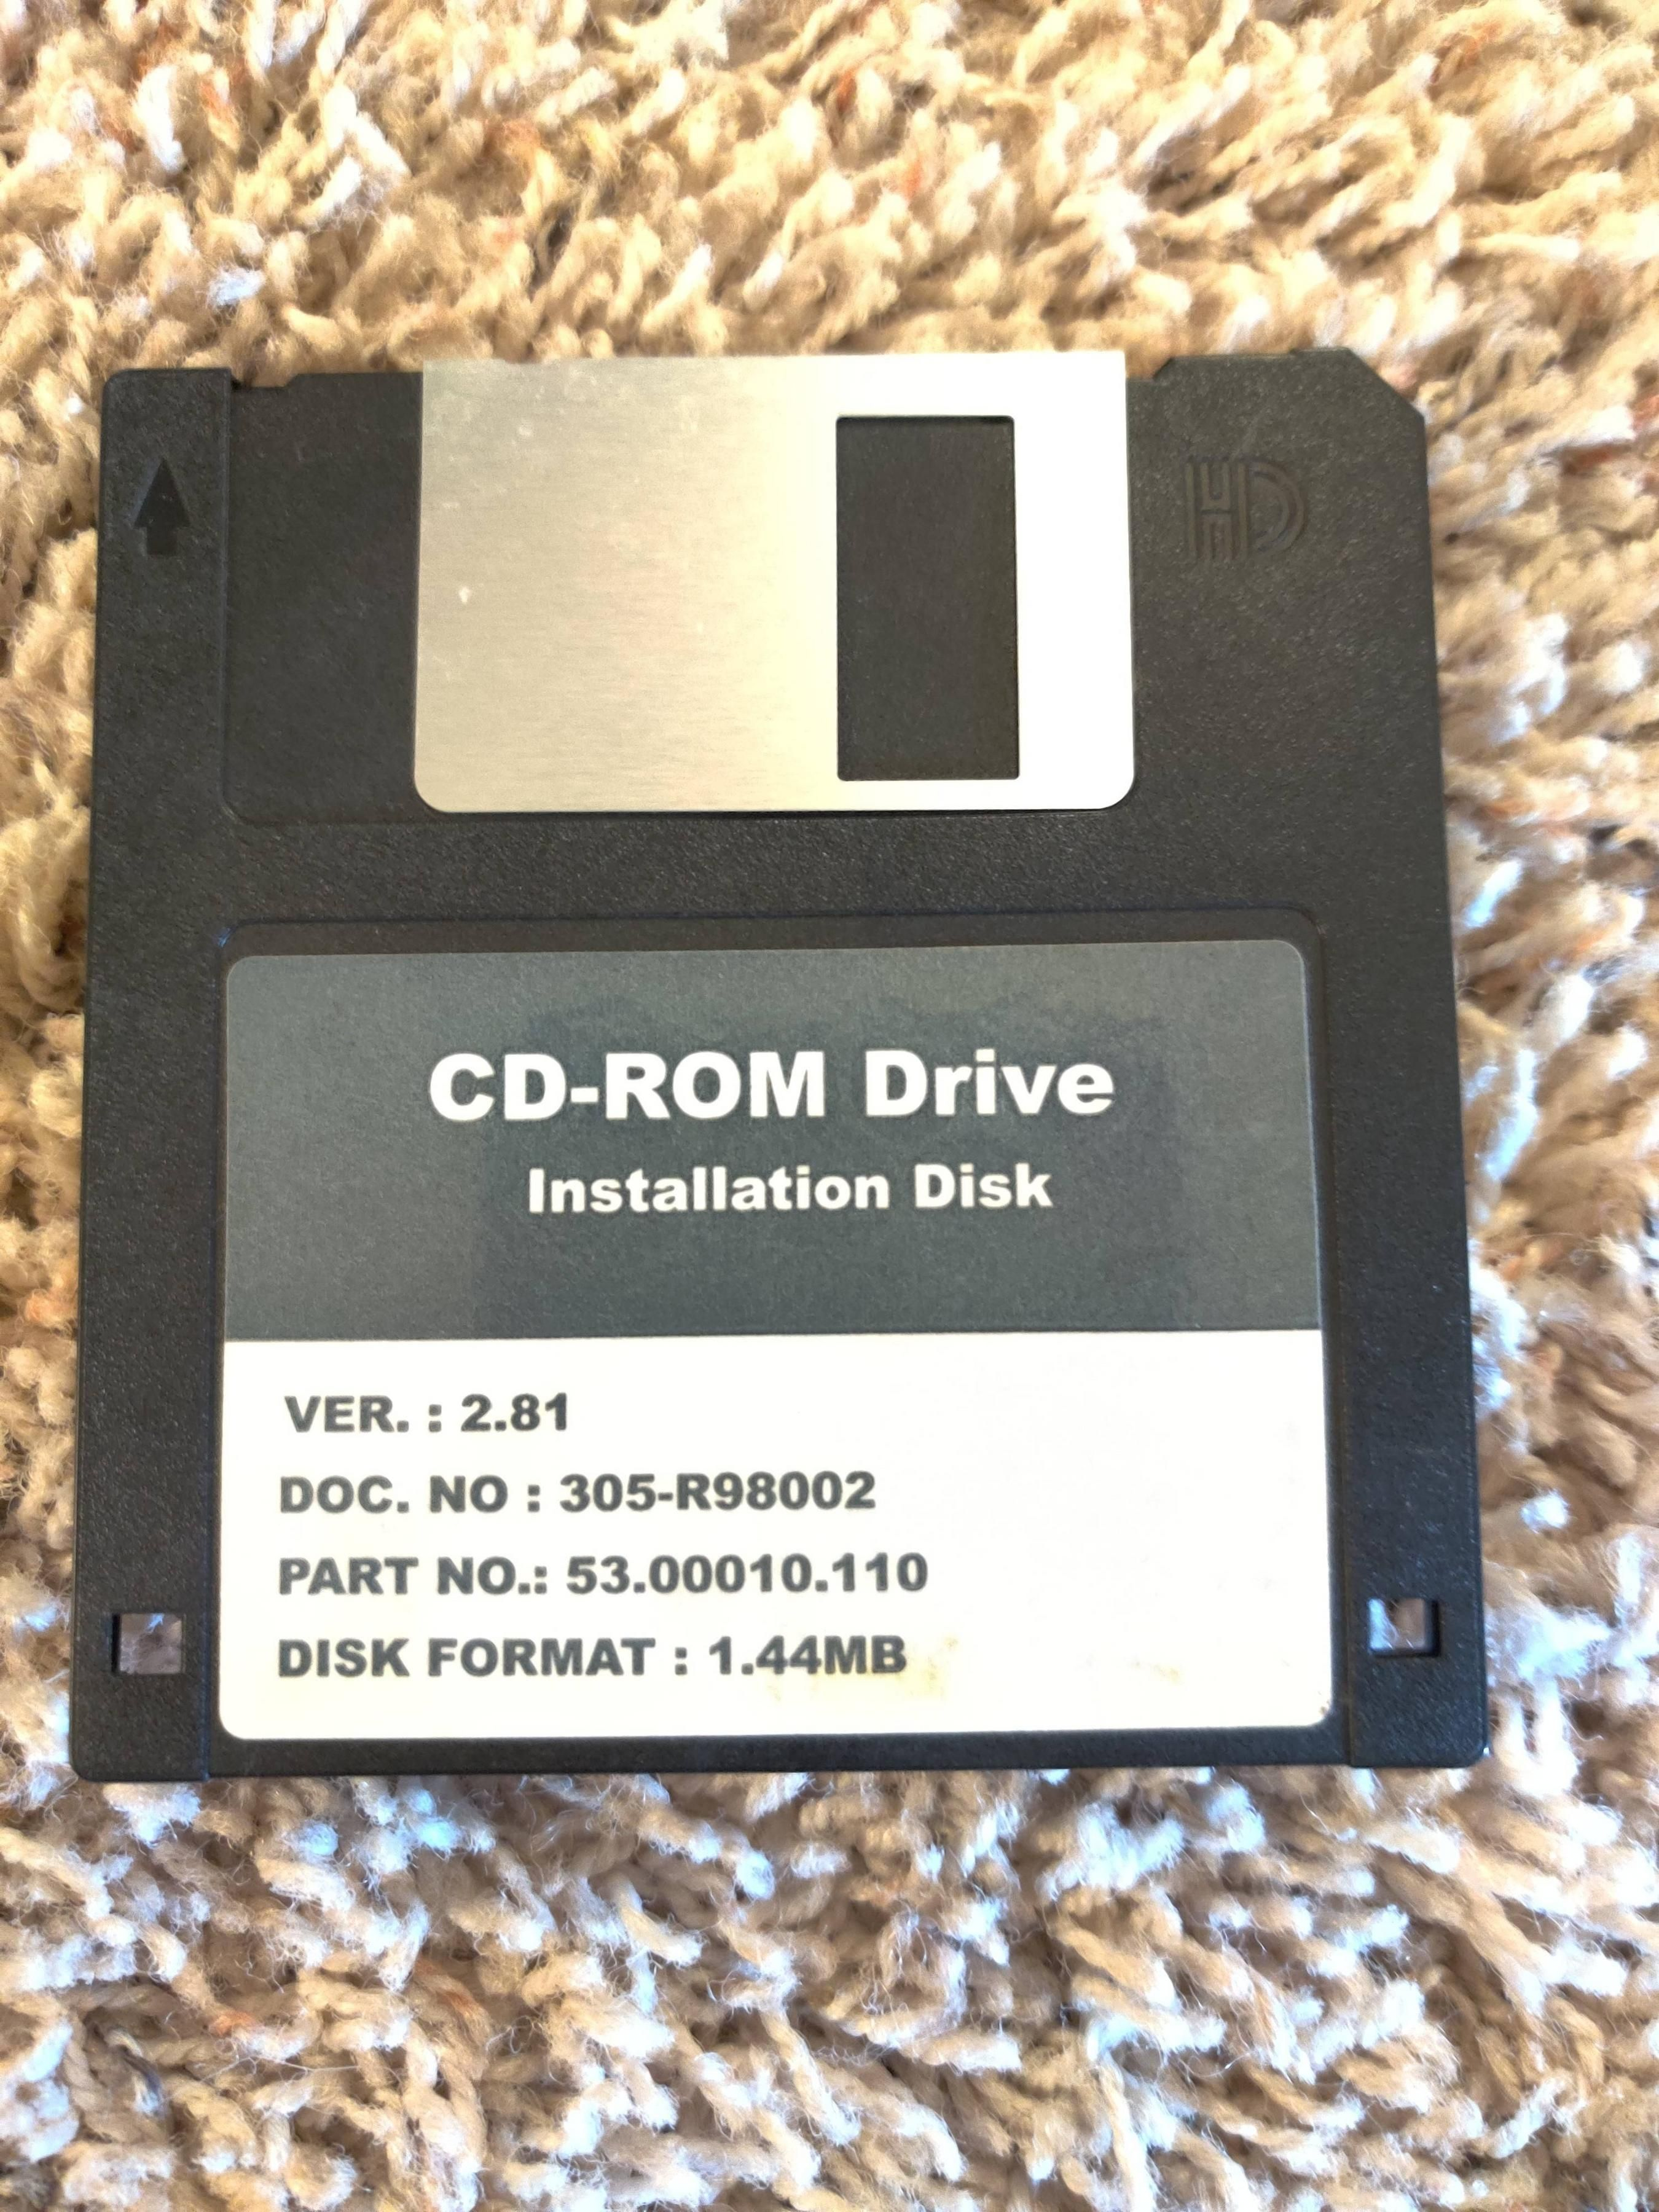 The floppy disk to end all floppy disks.